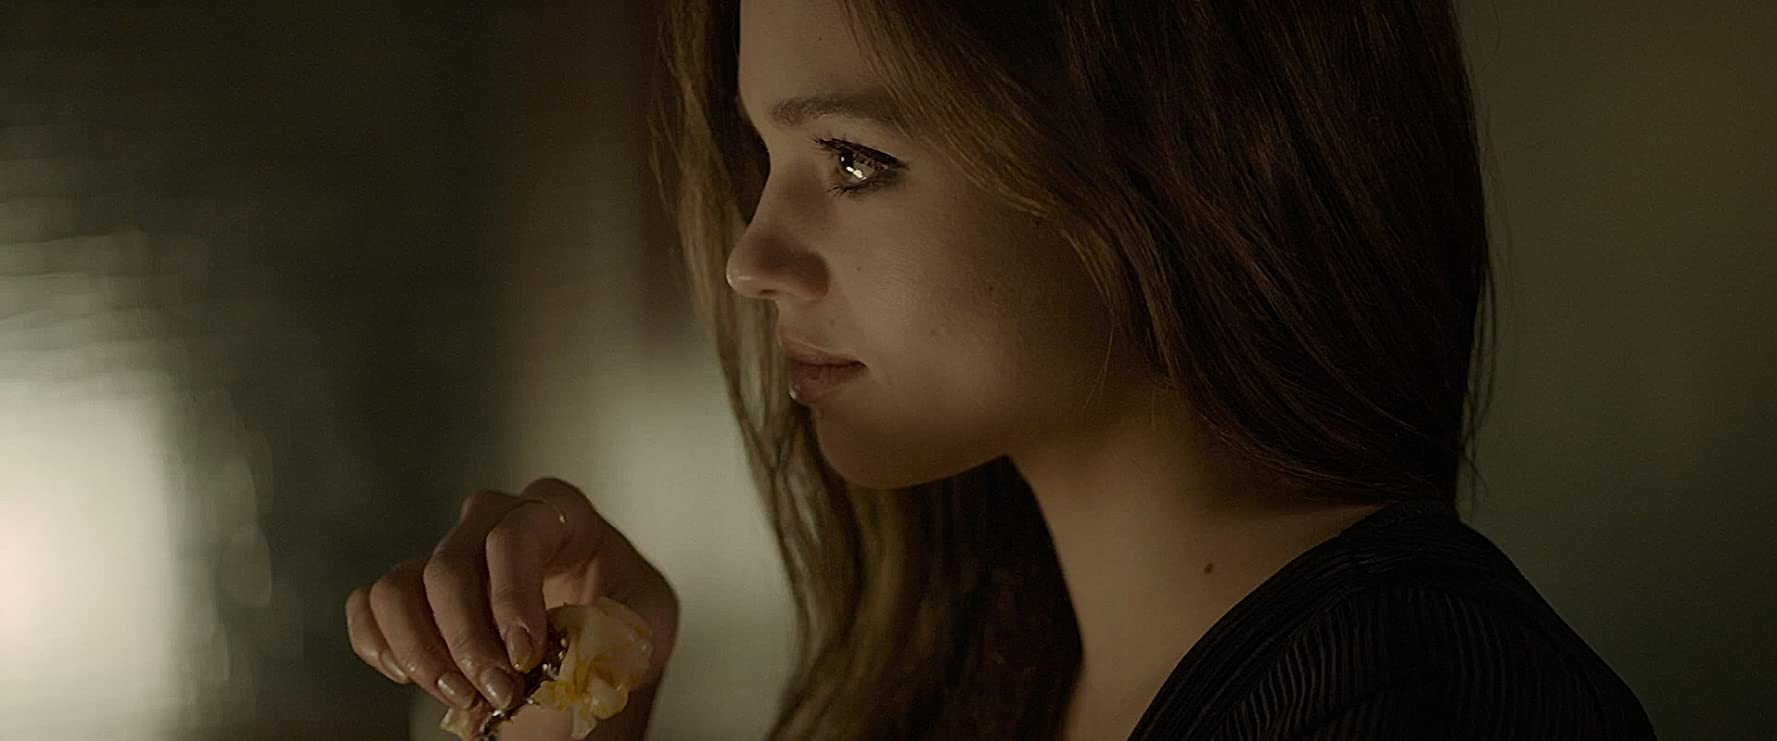 India Eisley look away new images